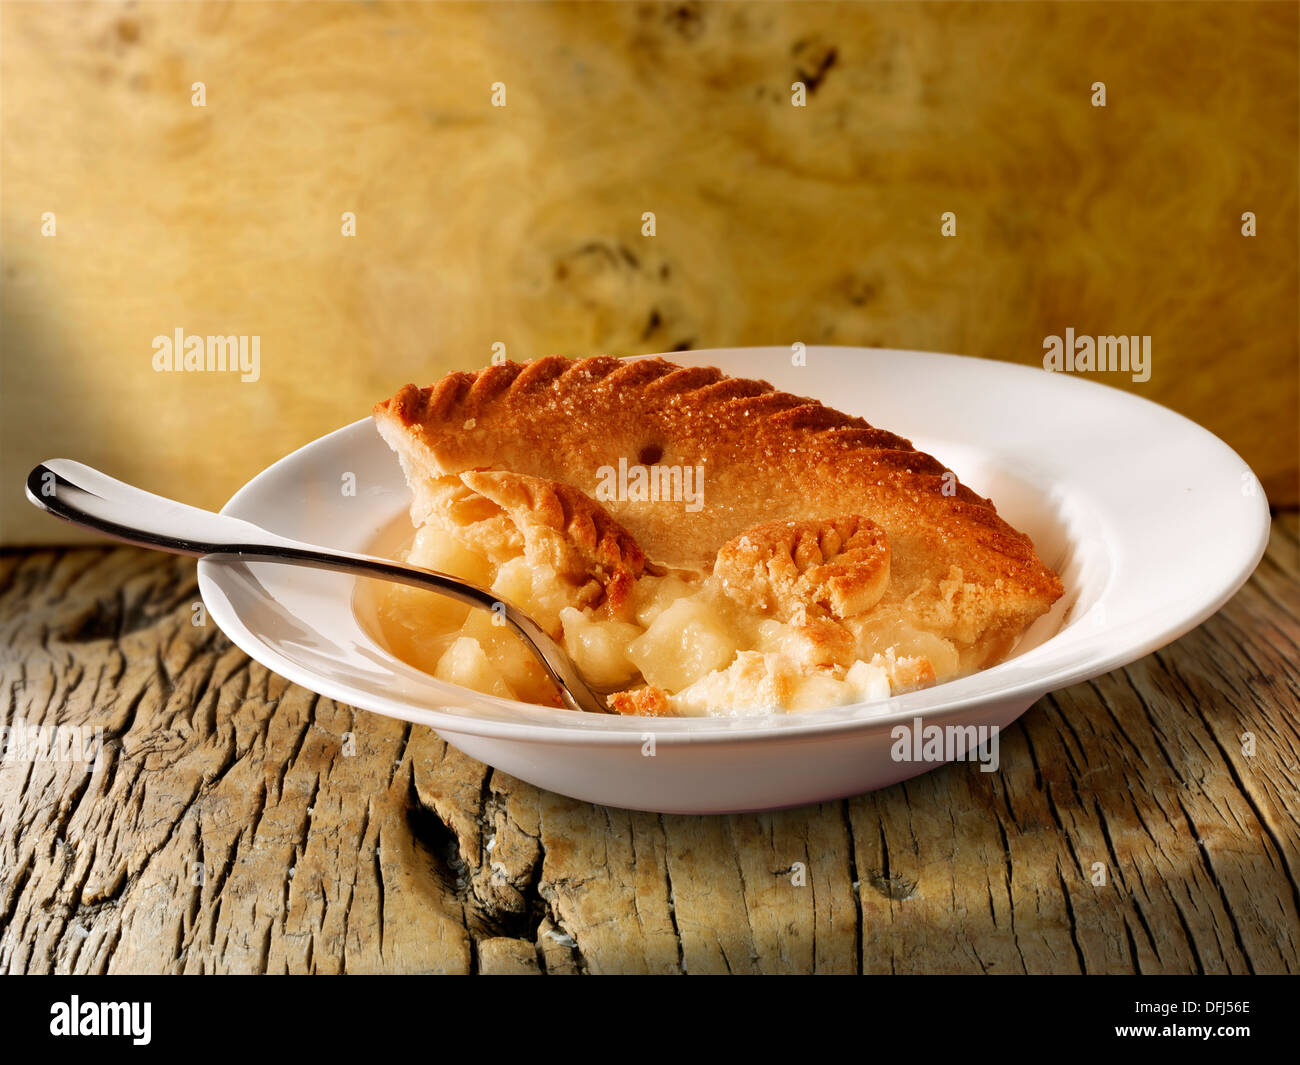 Traditional British apple pie and custard pudding served in a bowl on a wood table - Stock Image